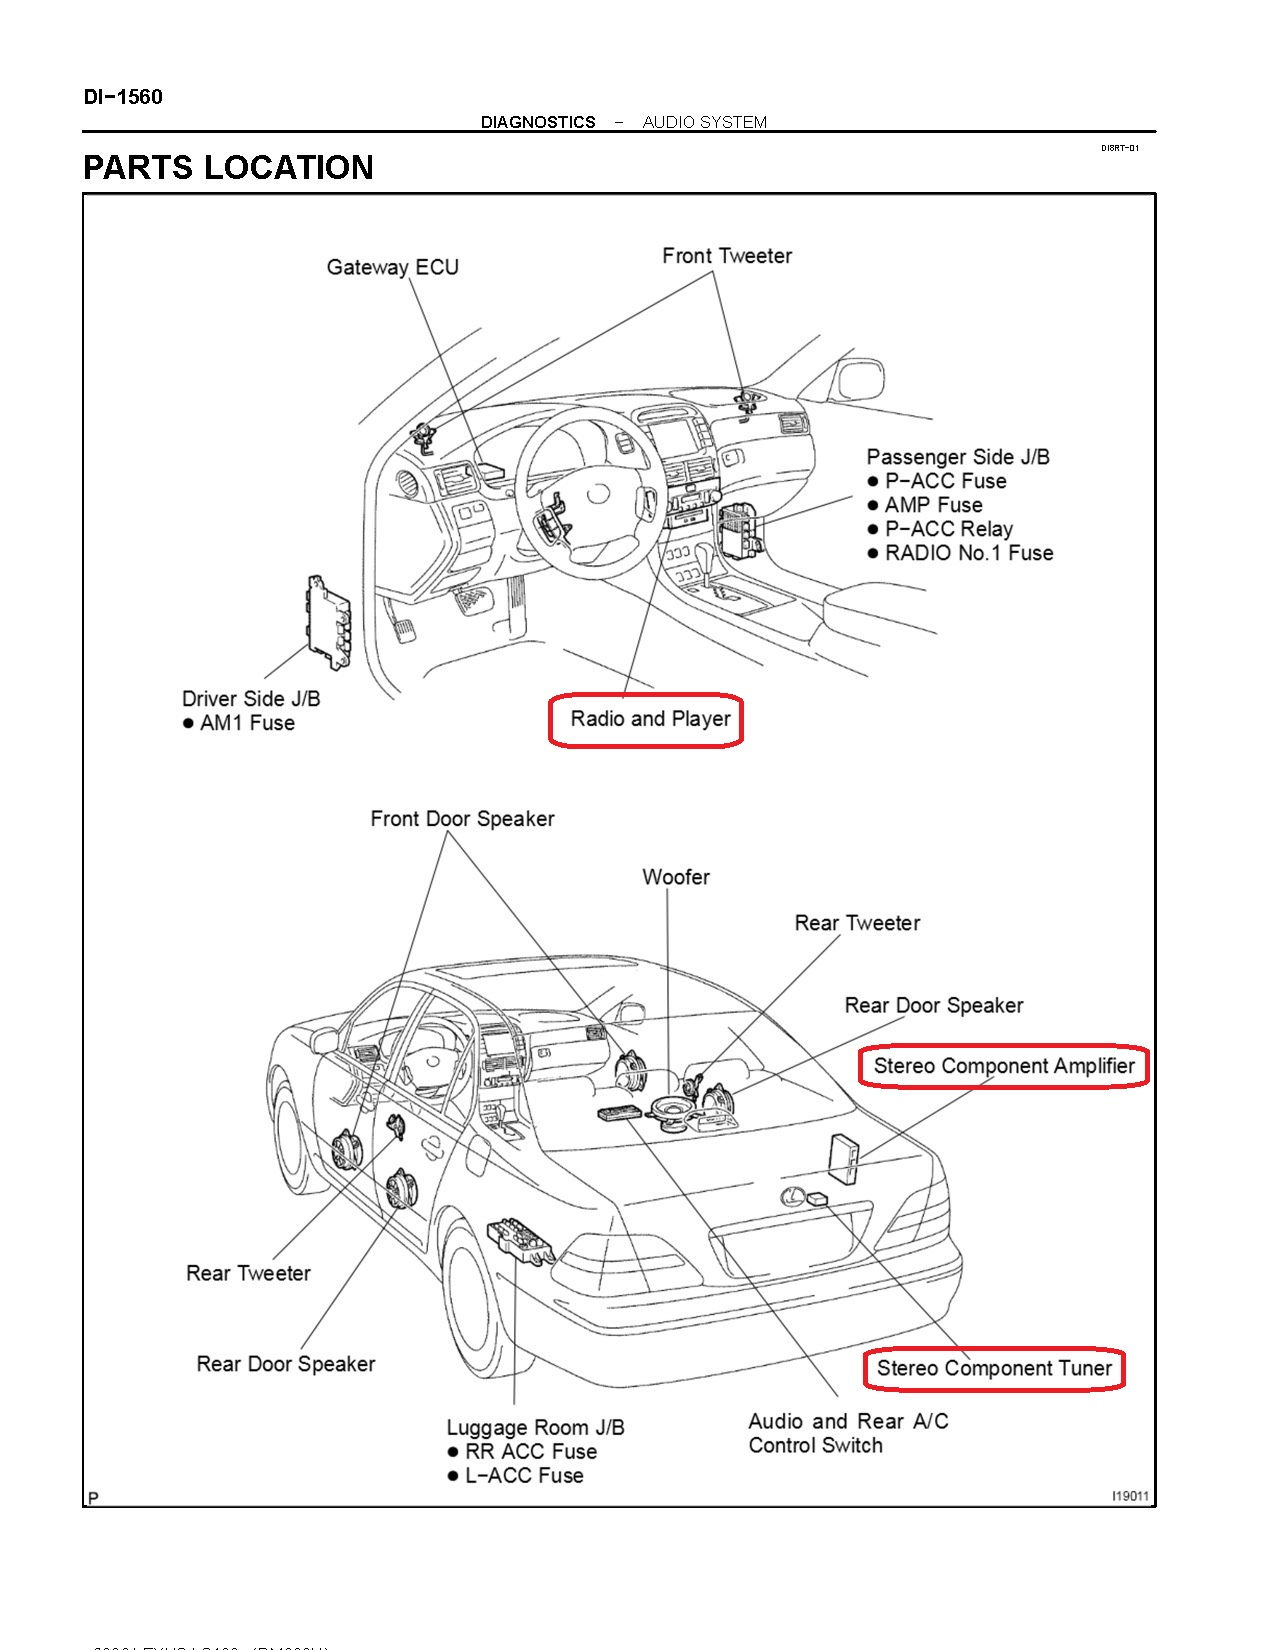 1993 Lexus Ls400 Parts Diagram